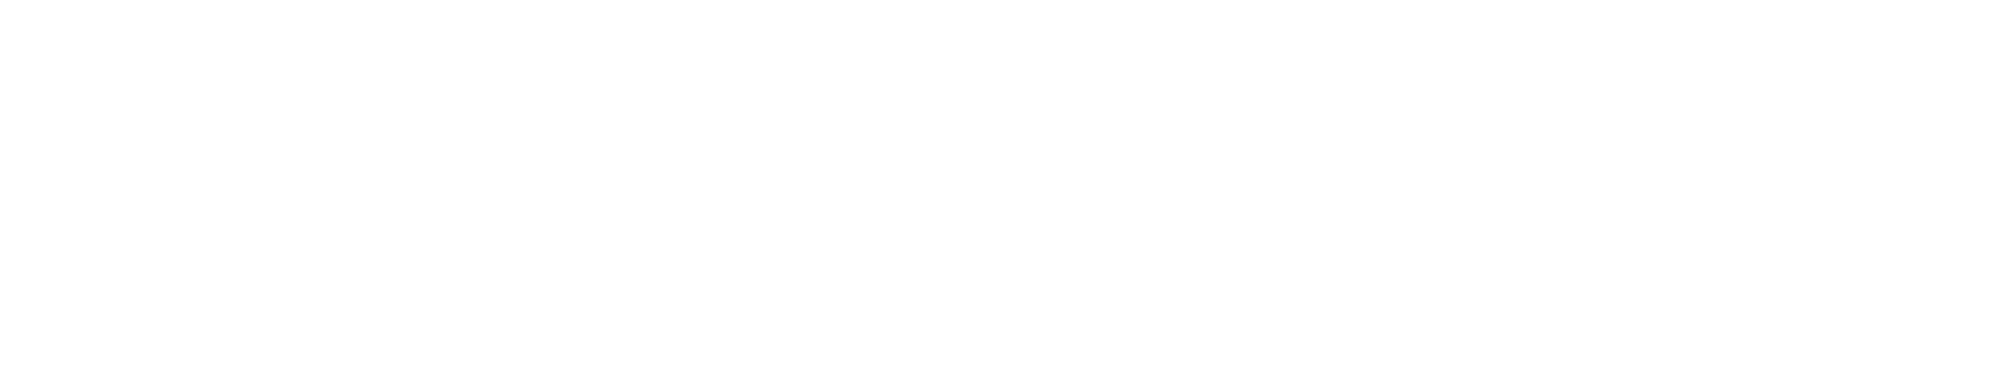 University System of NH Logo